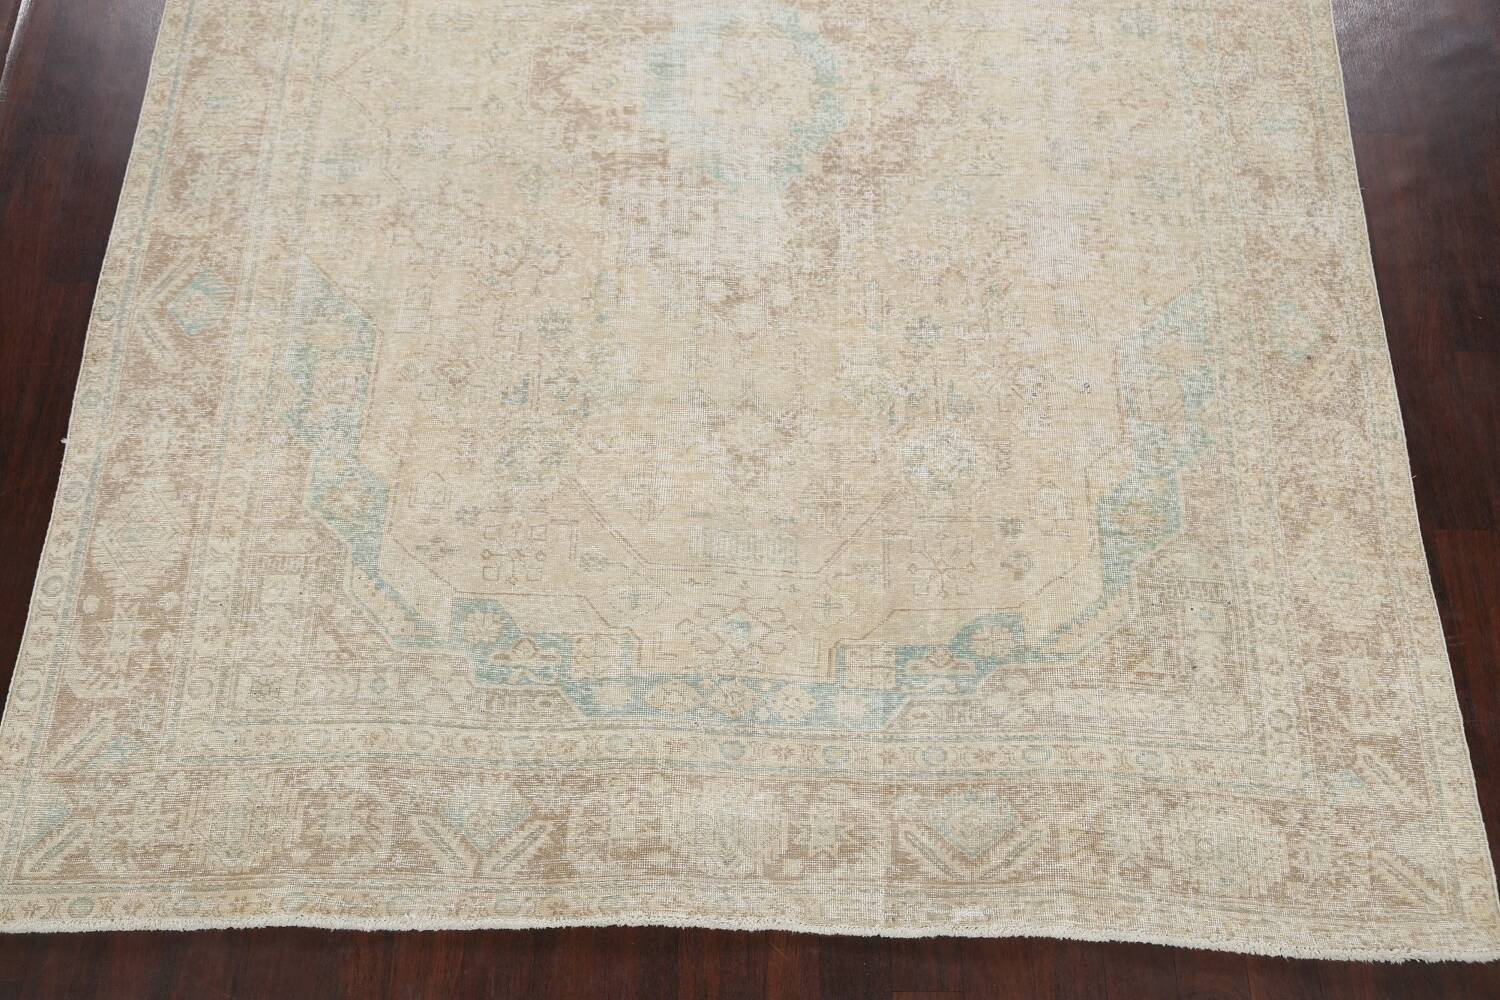 Antique Muted Distressed Tabriz Persian Area Rug 9x13 image 8